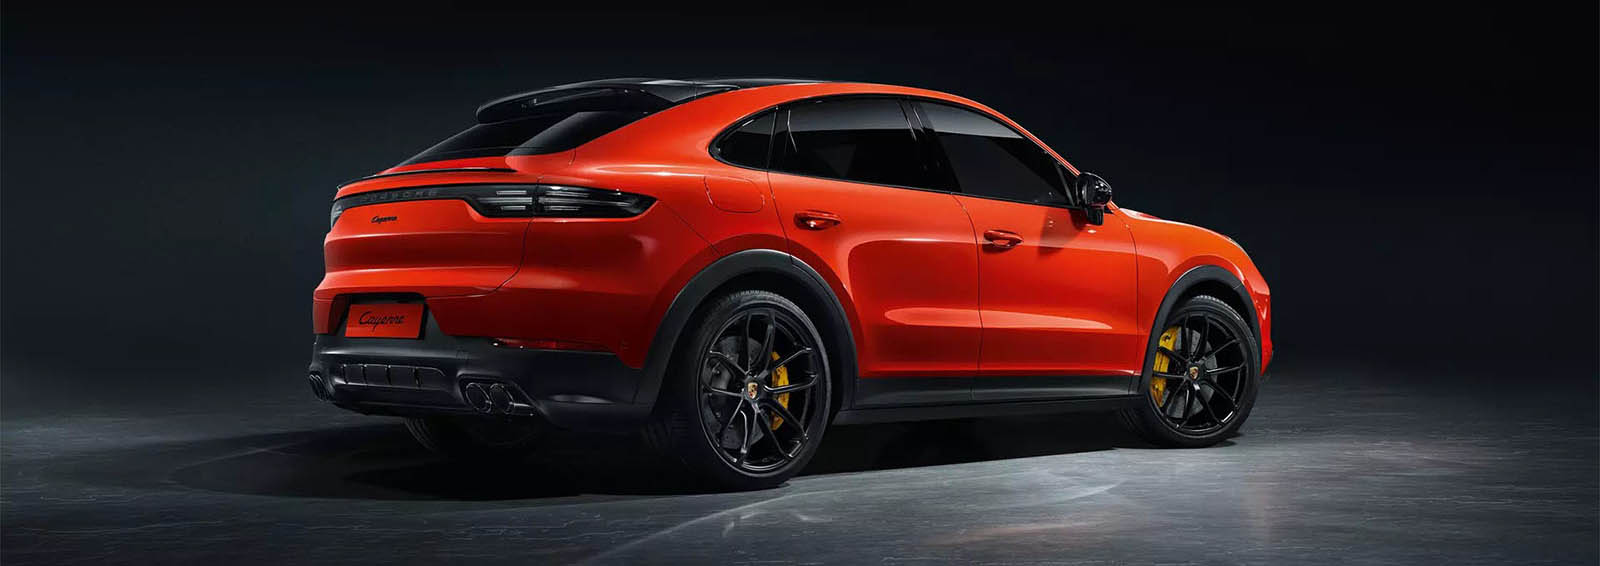 2020 Porsche Cayenne Coupe Appearance Main Img